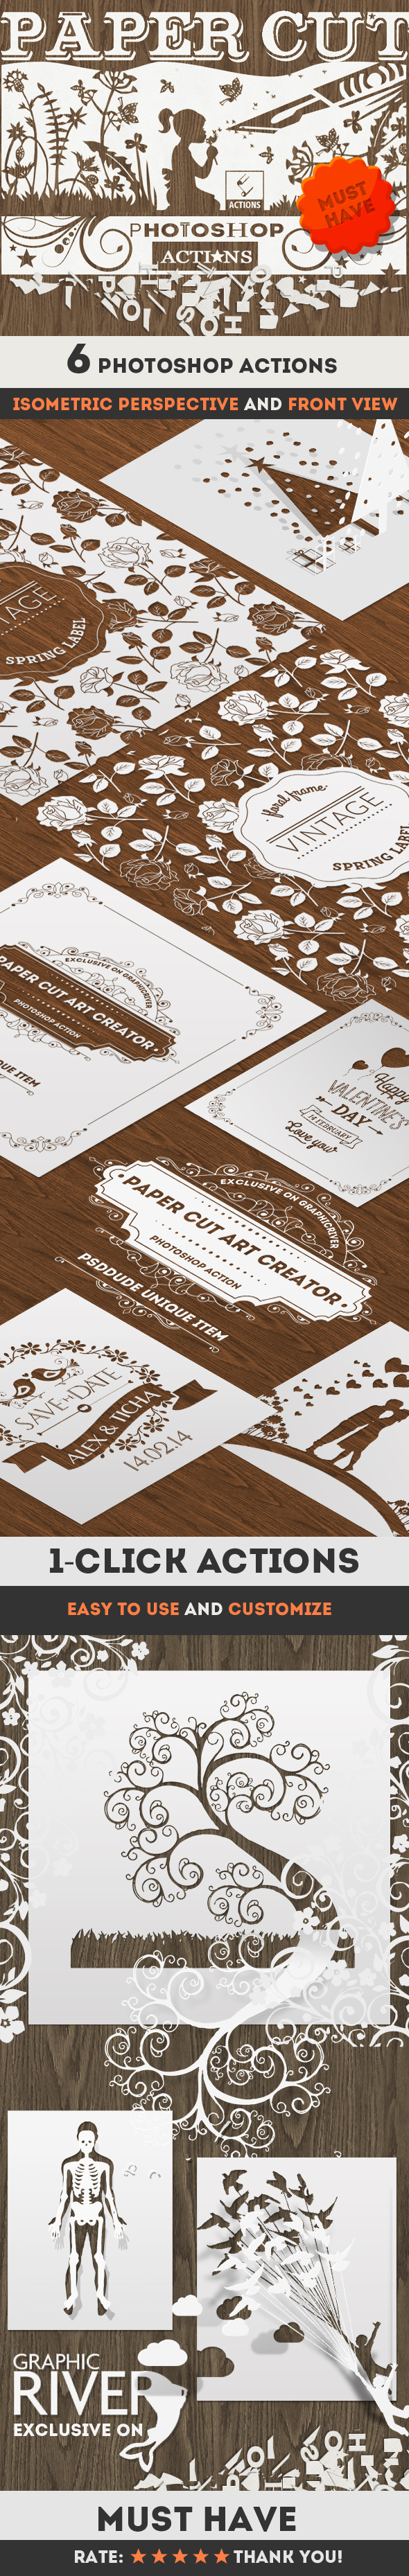 GraphicRiver Paper Cut Art Photoshop Actions 11362784